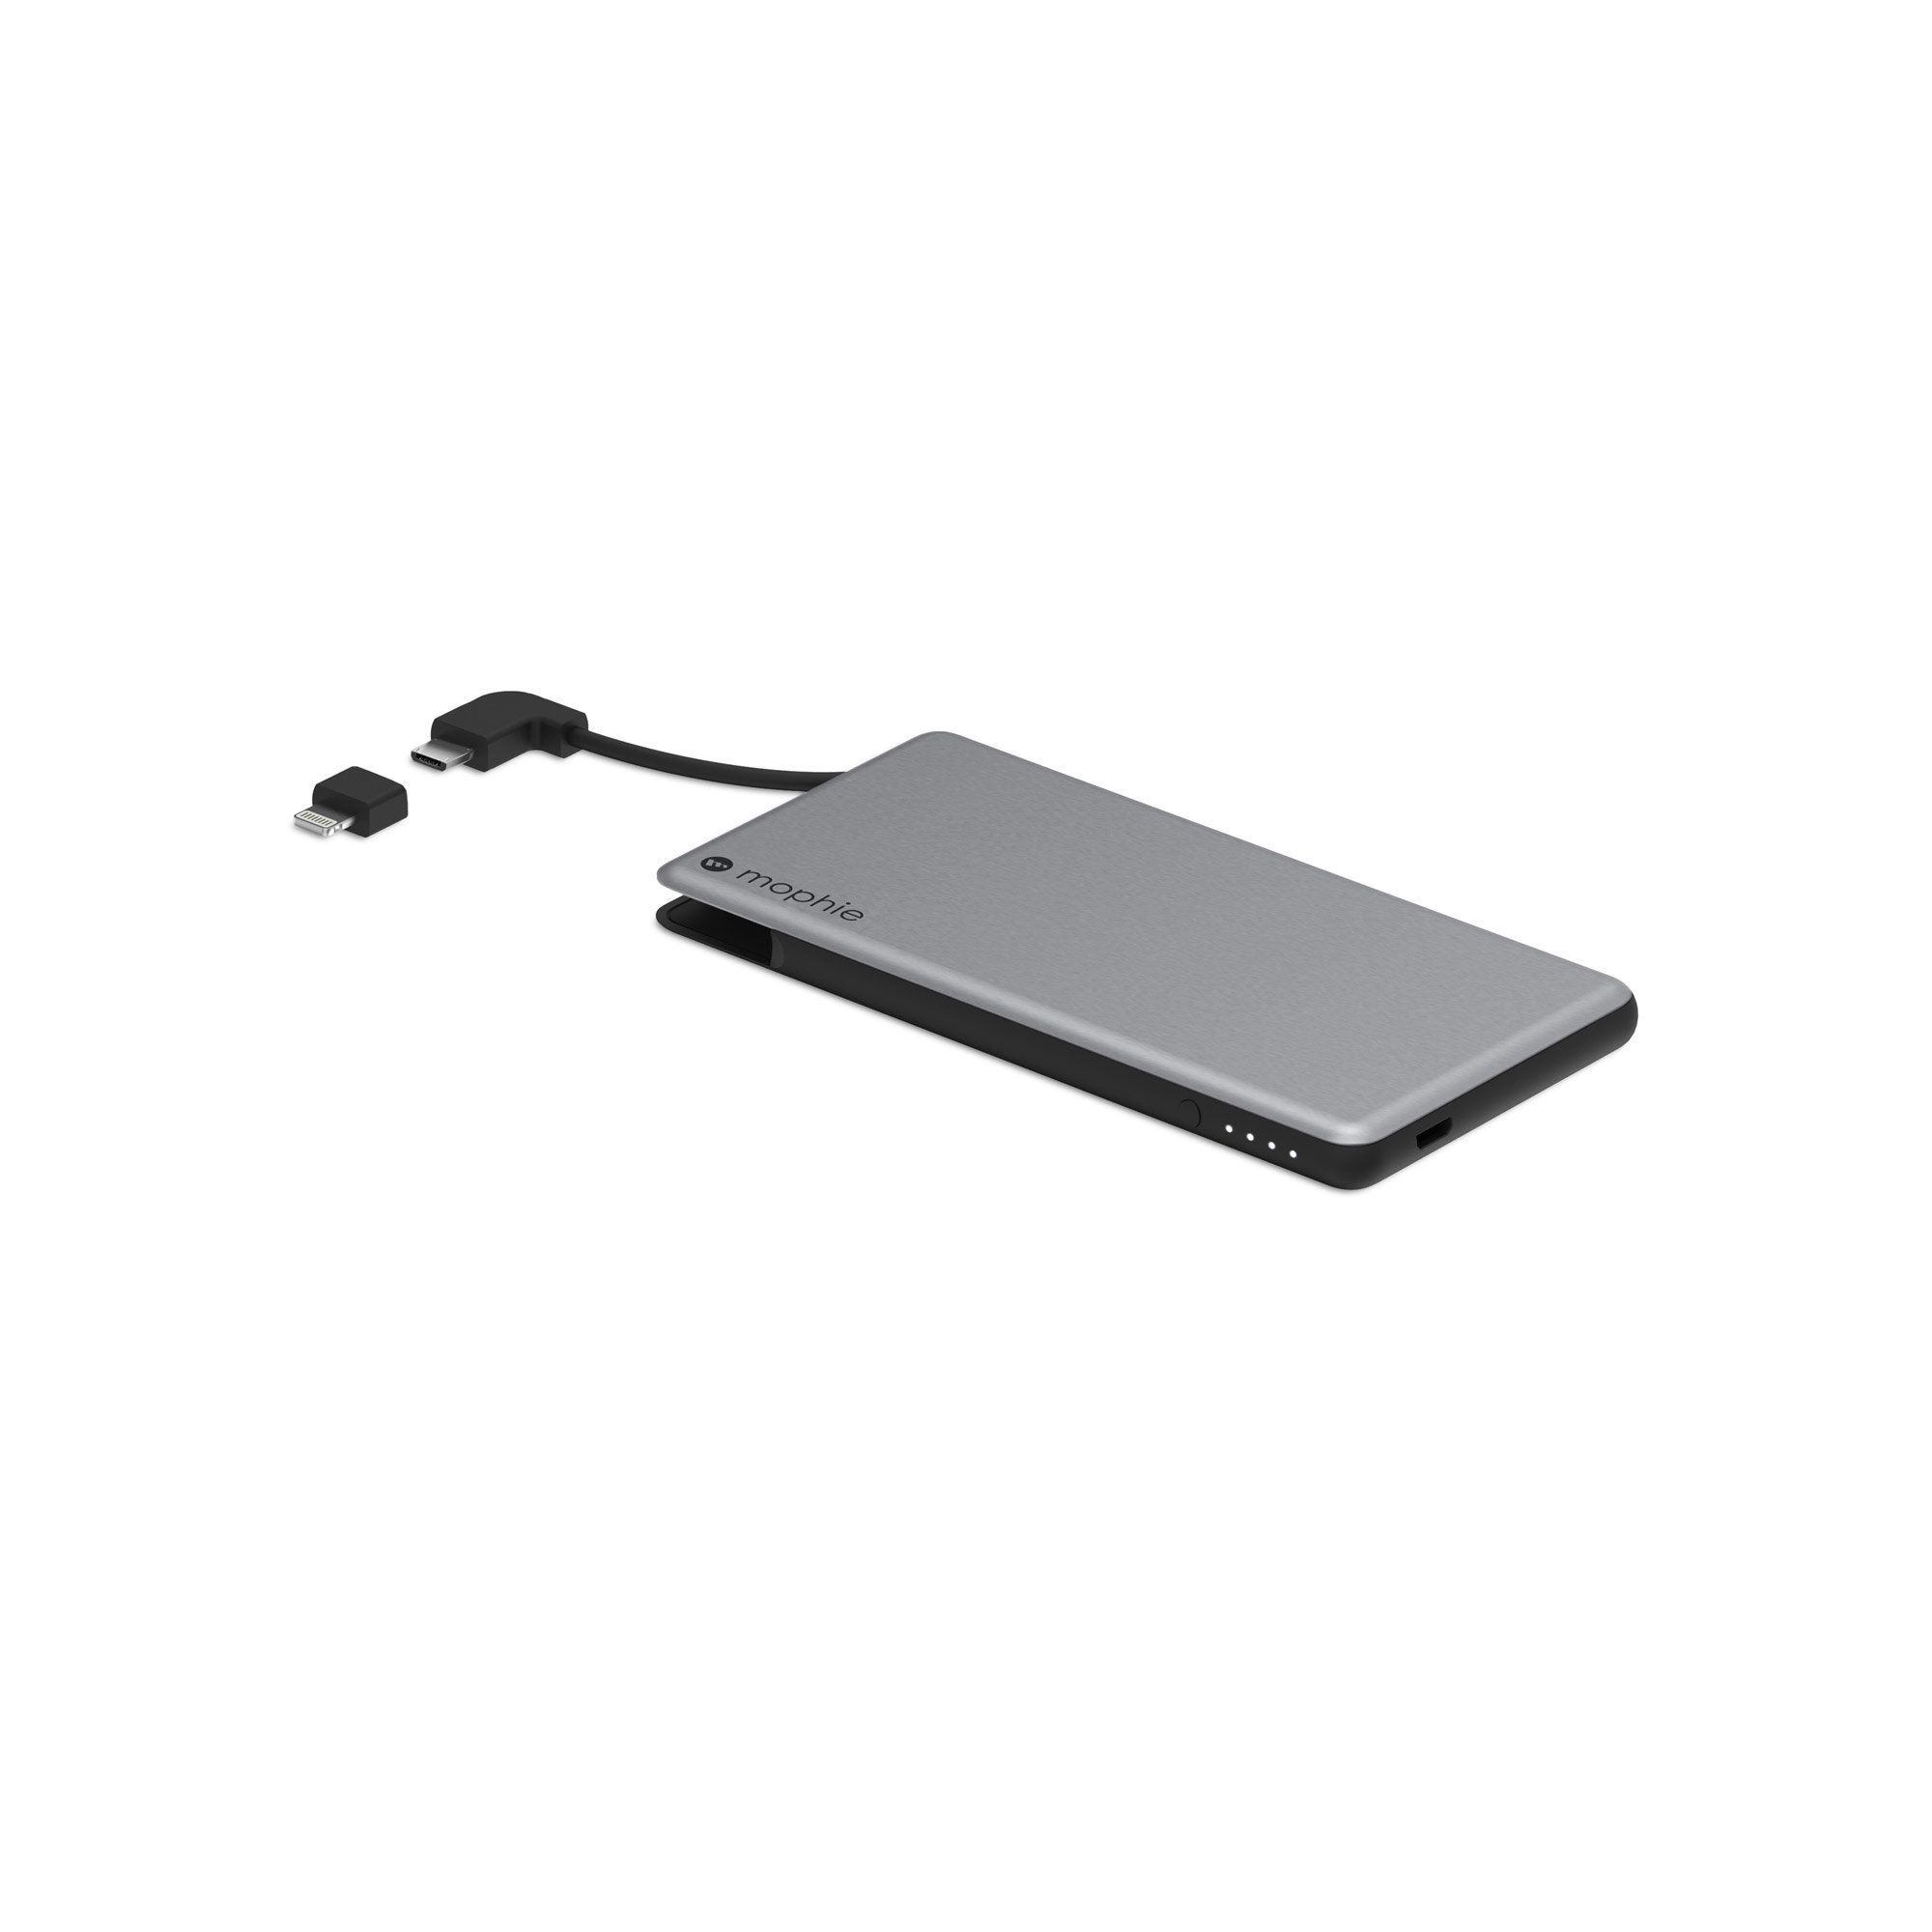 mophie powerstation Plus Mini External Battery with Built in Cables for Smartphones and Tablets (4,000mAh) - Space Grey by mophie